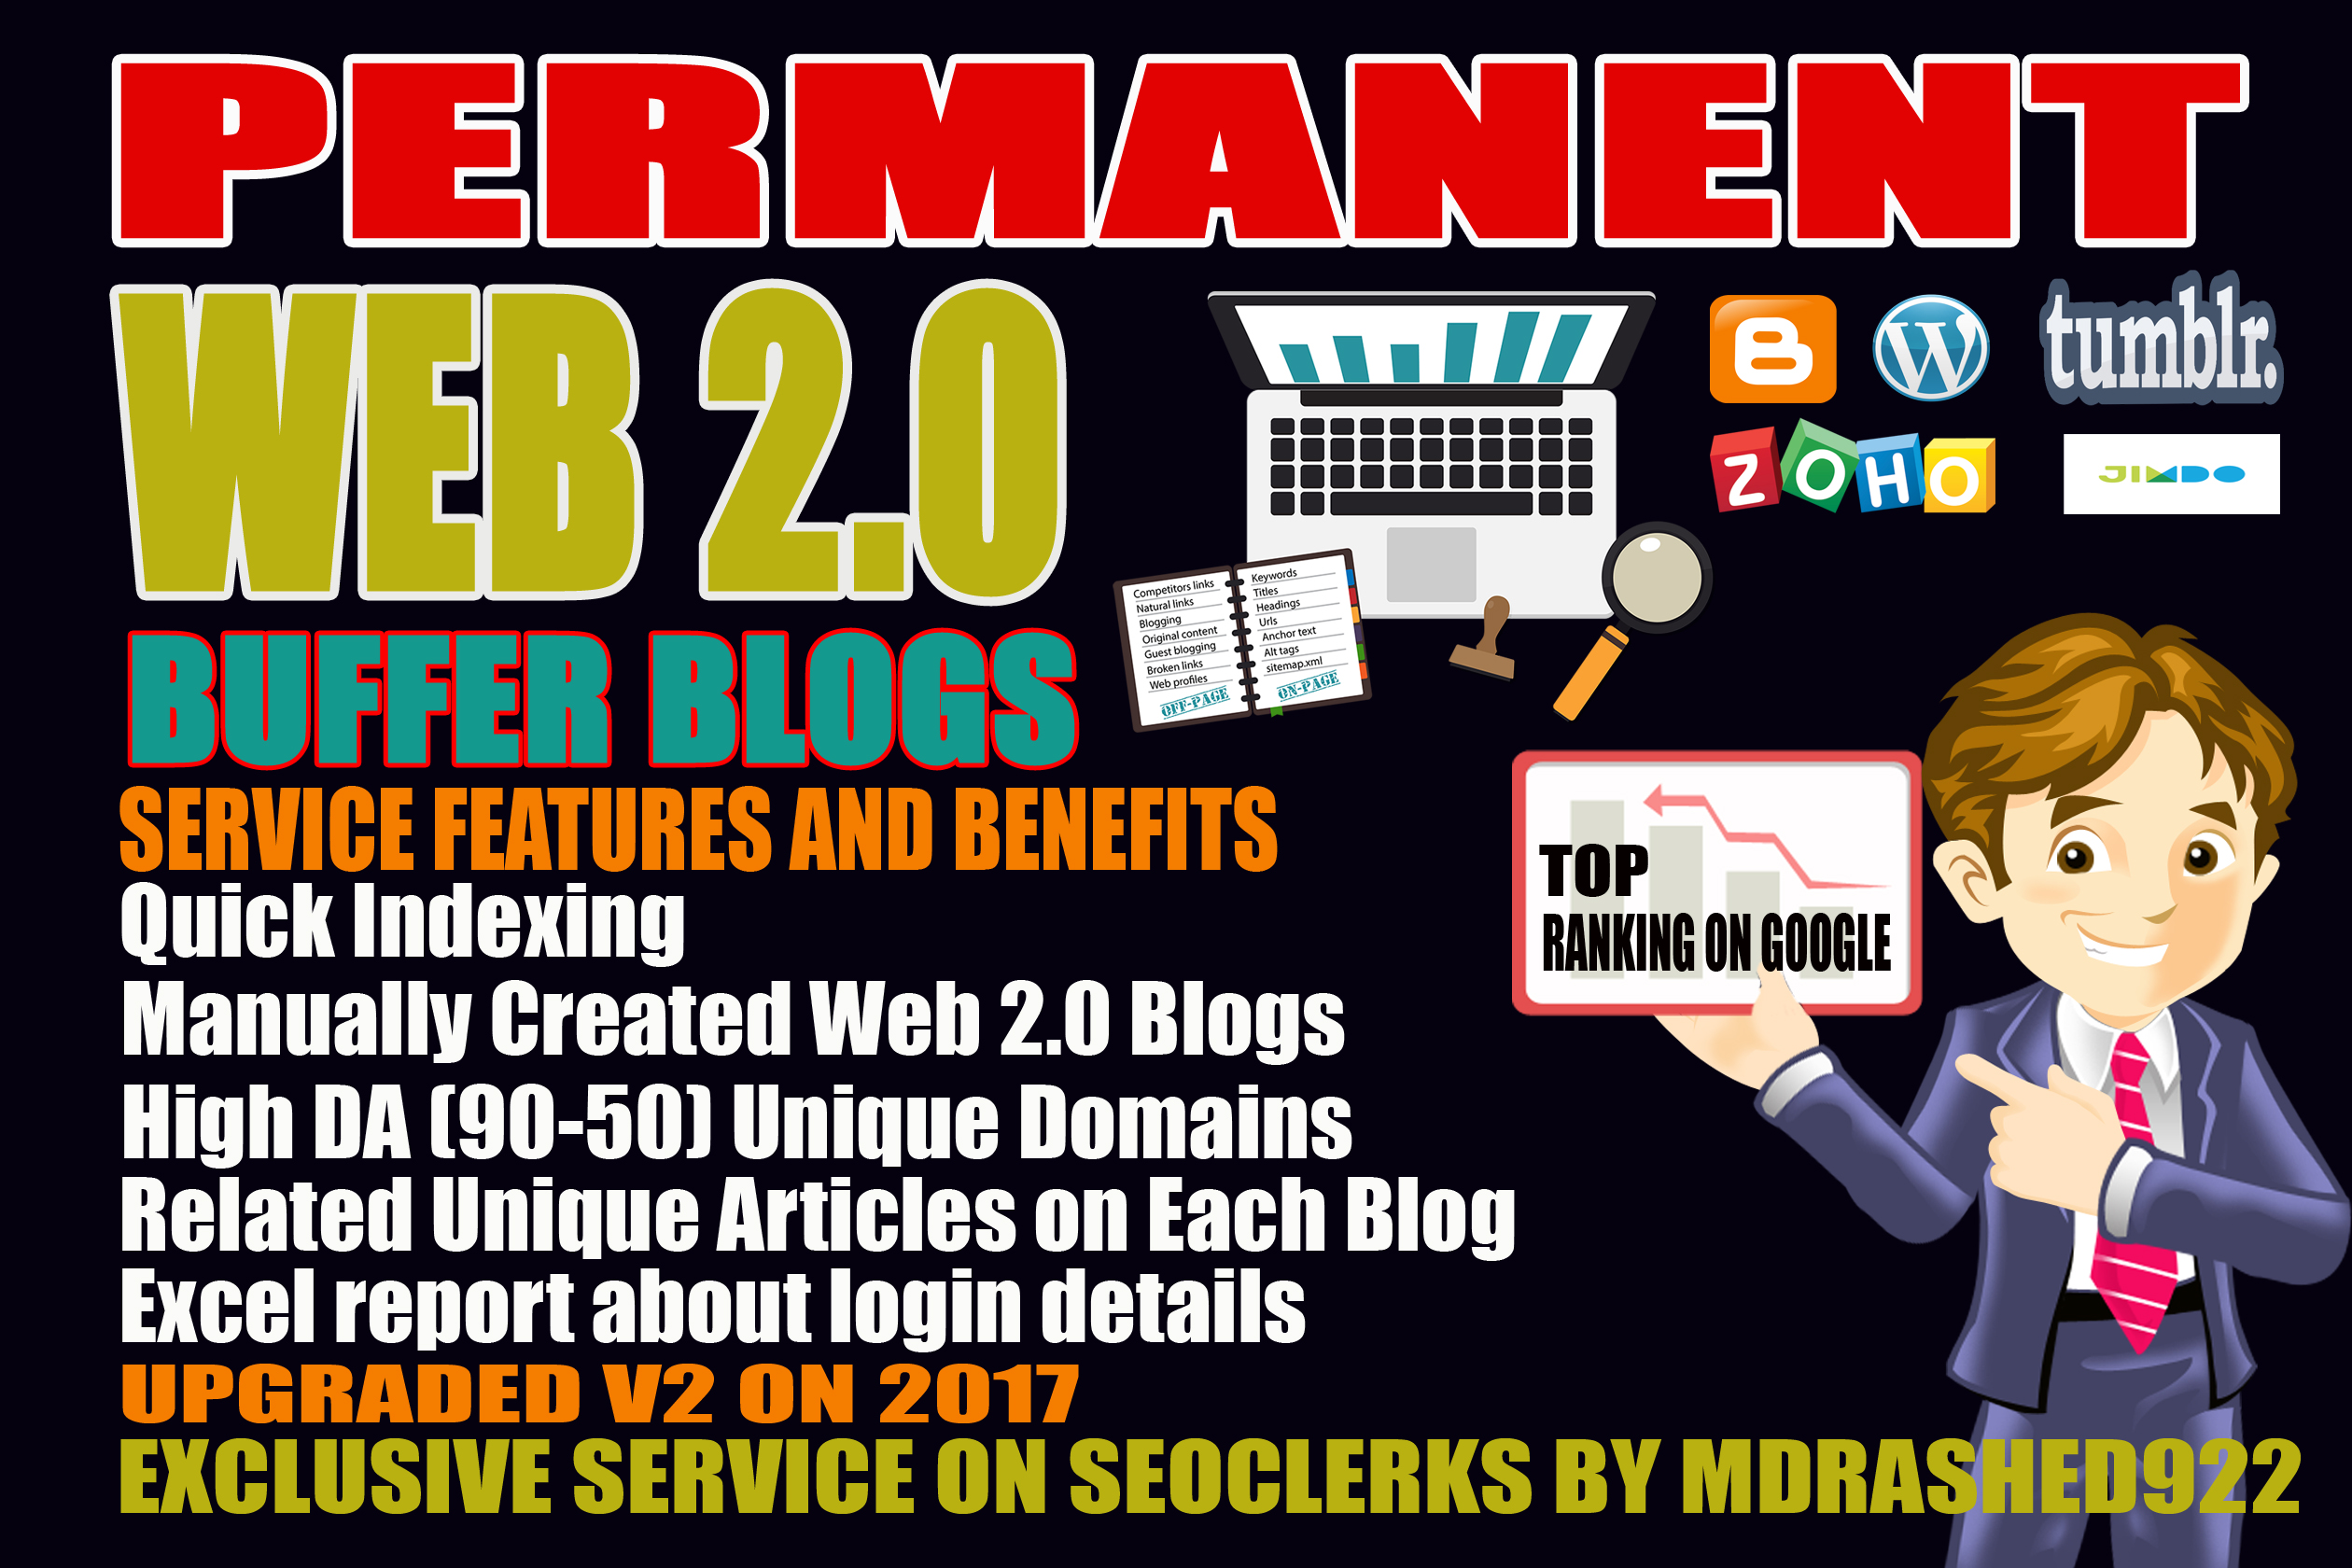 Handmade 15 Web 2.0 Buffer Blogs with login, unique Content,  Image,  Video and High DA Backlinks